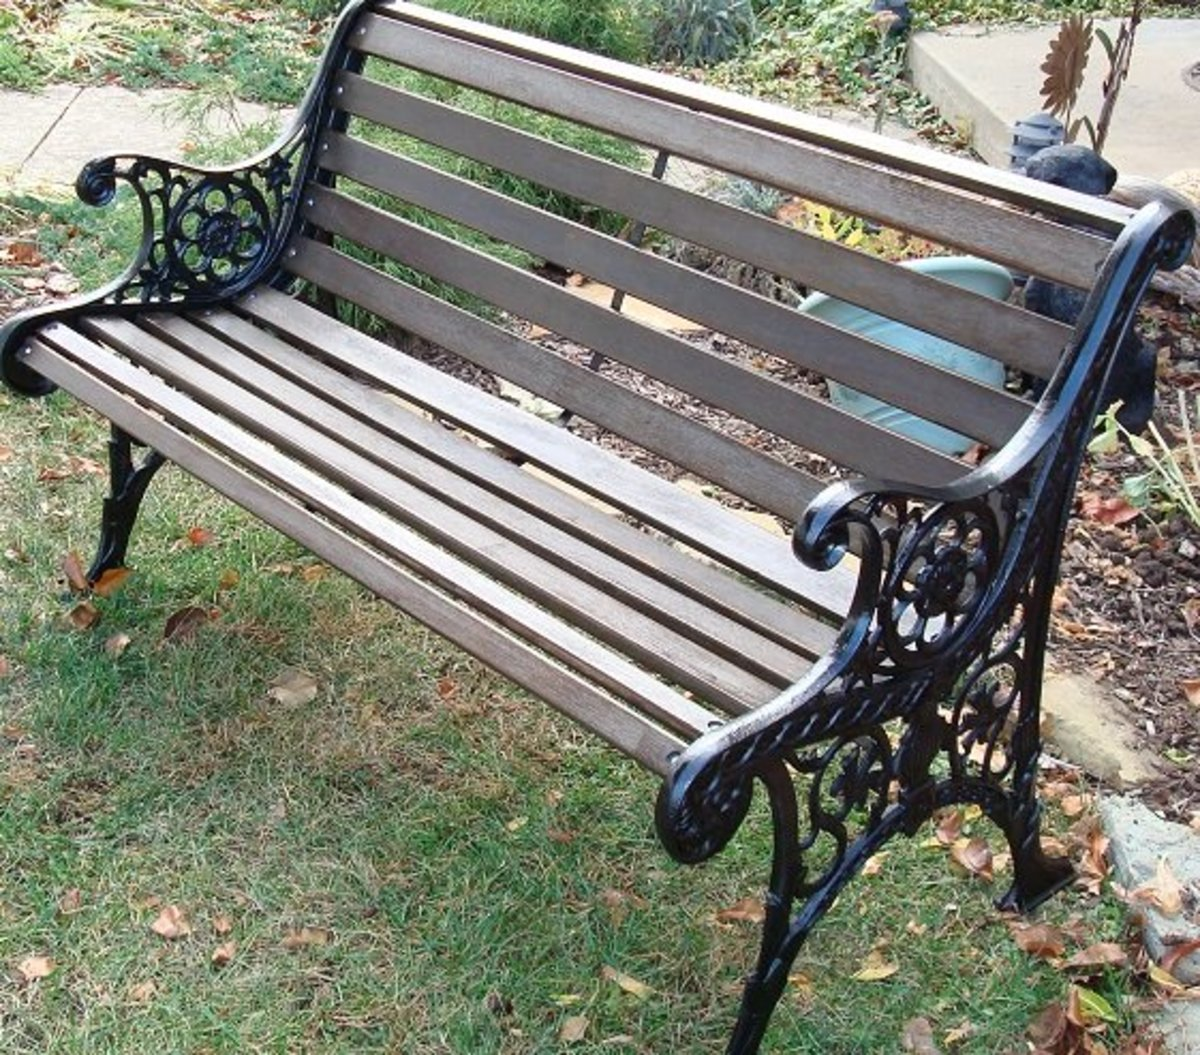 Enjoyable Diyhow To Restore A Cast Iron And Wood Garden Bench Dengarden Machost Co Dining Chair Design Ideas Machostcouk